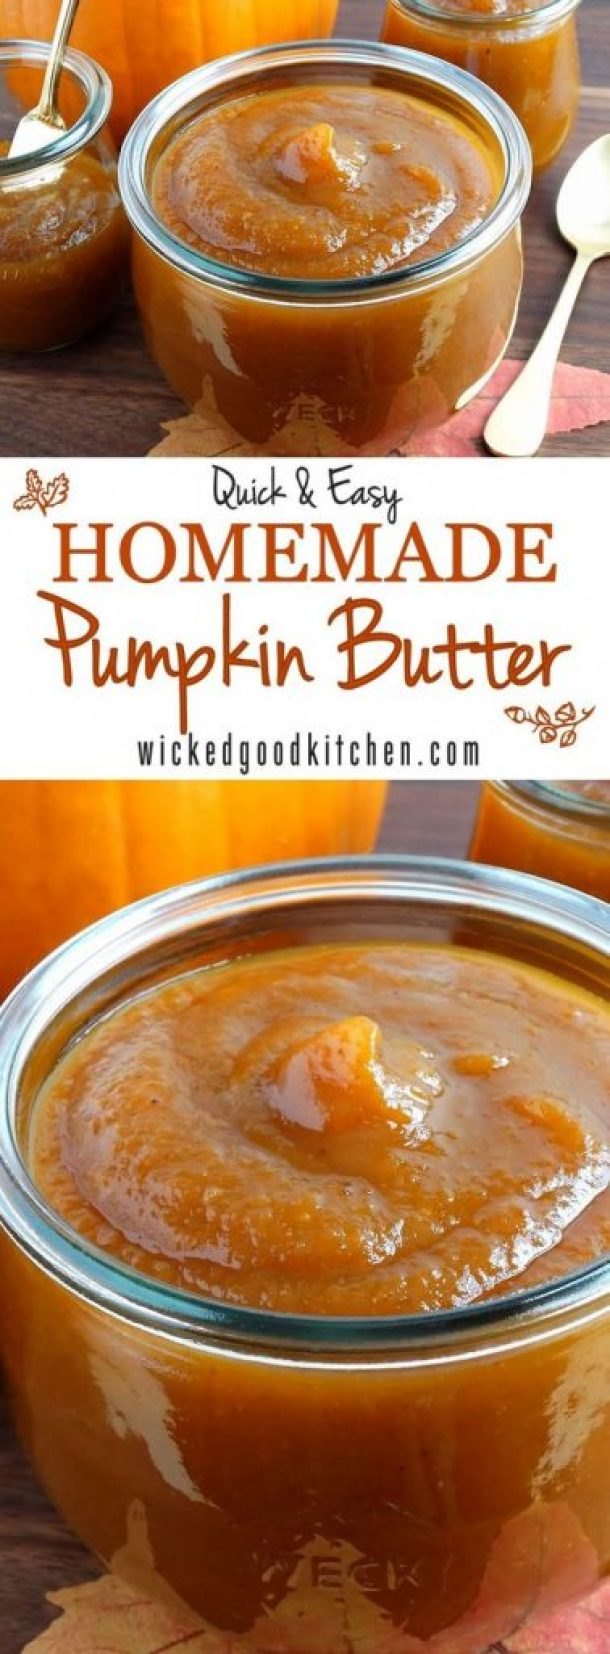 Homemade Pumpkin Butter (quick & easy) Recipe | Wicked Good Kitchen